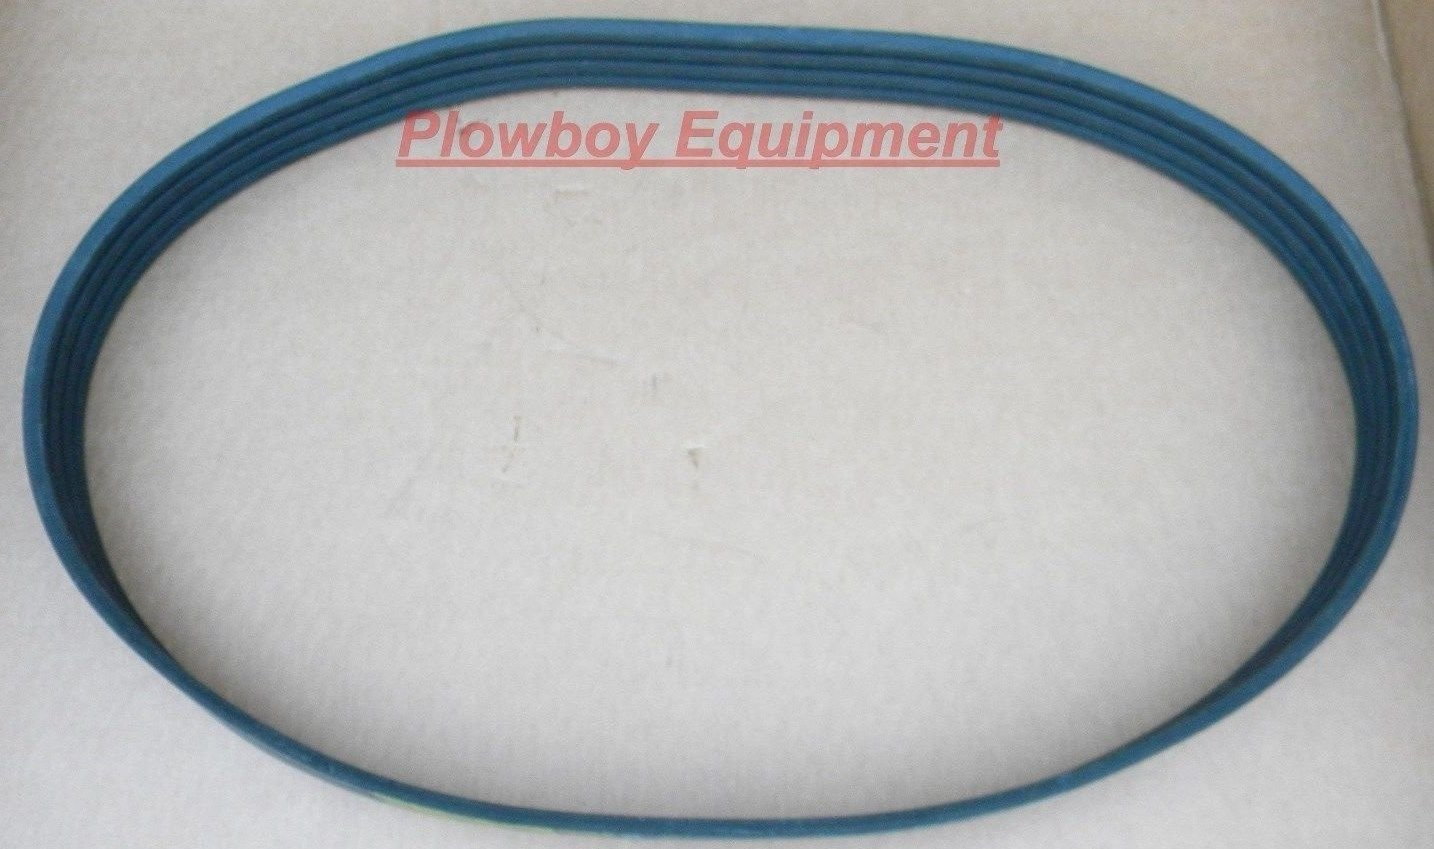 10 Most Recommended New Idea Disc Mower Parts disc mower drive belt 4 band 527975 for idea 5409 5410 hay tool 2020